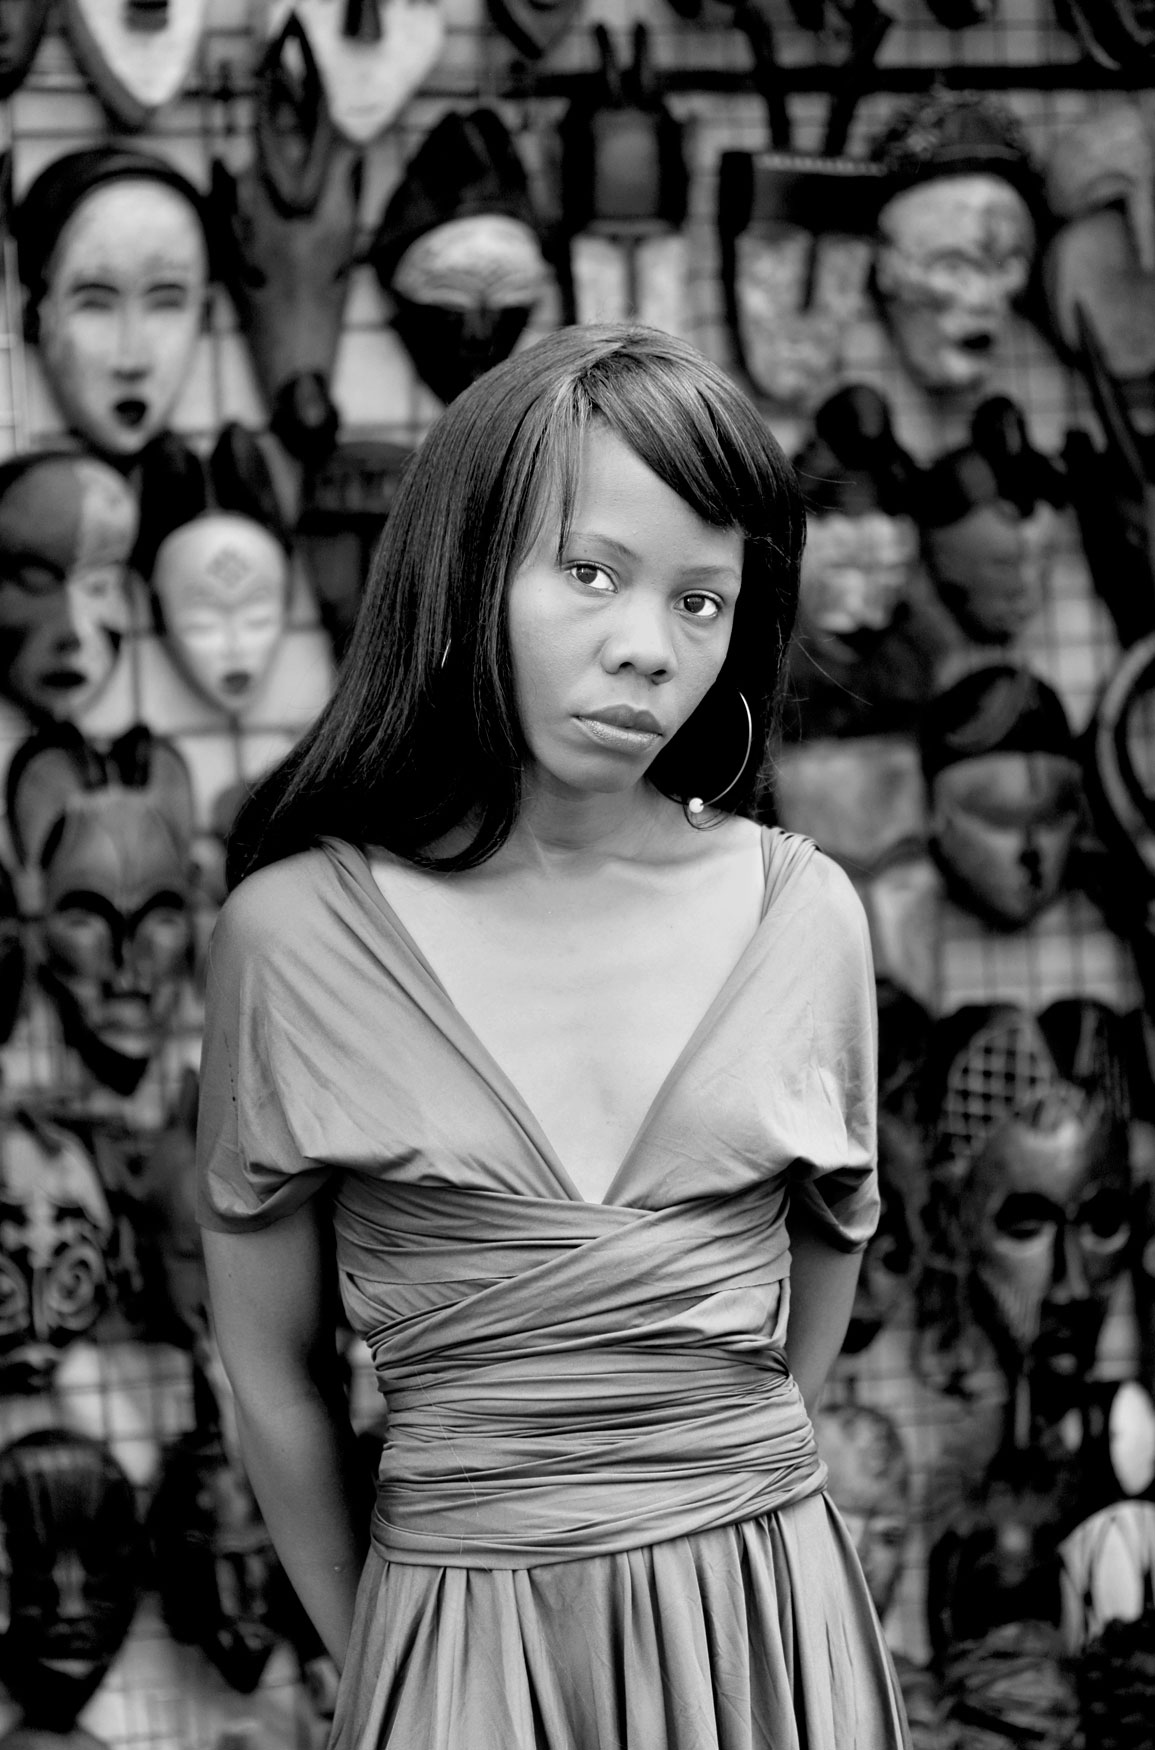 Kekeletso Khena, Green Market Square, Cape Town. From the series Faces and Phases, 2012.